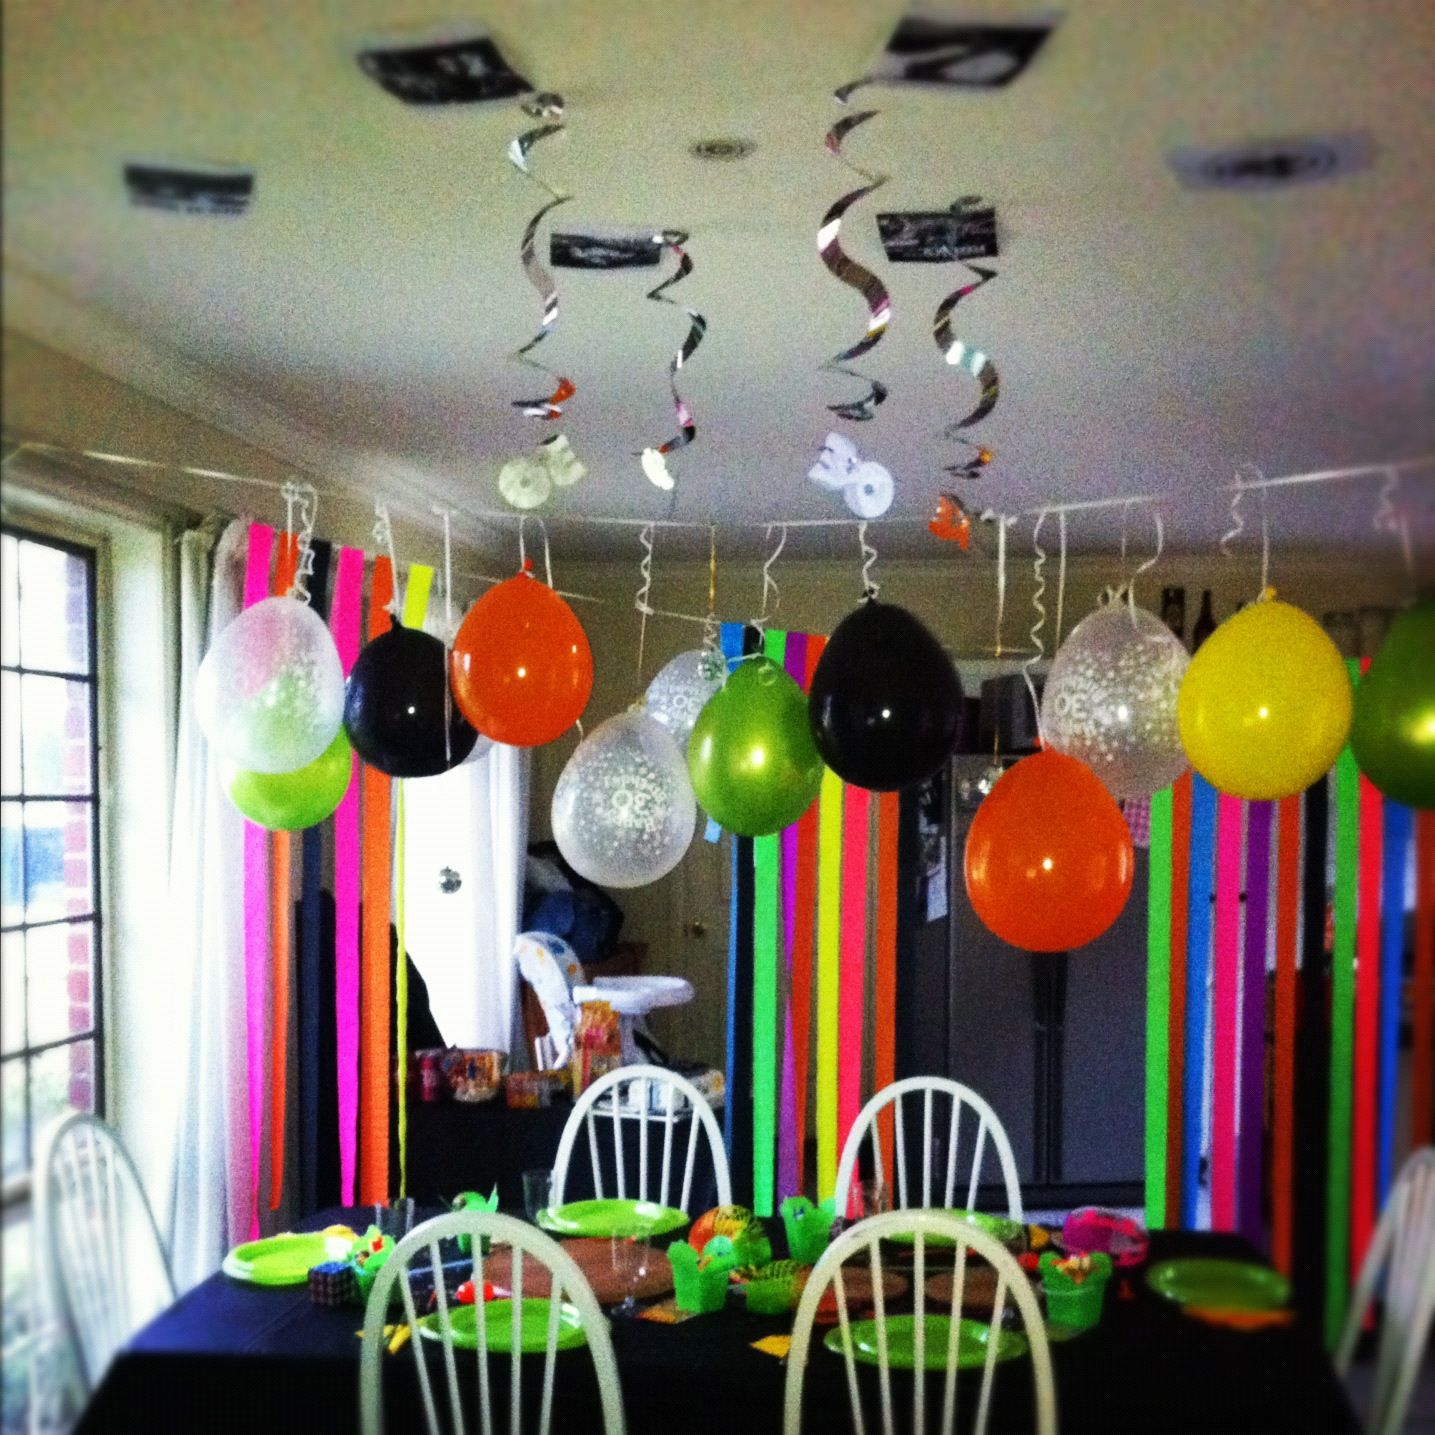 Decorating birthday party ideas Pinterest 80th birthday party